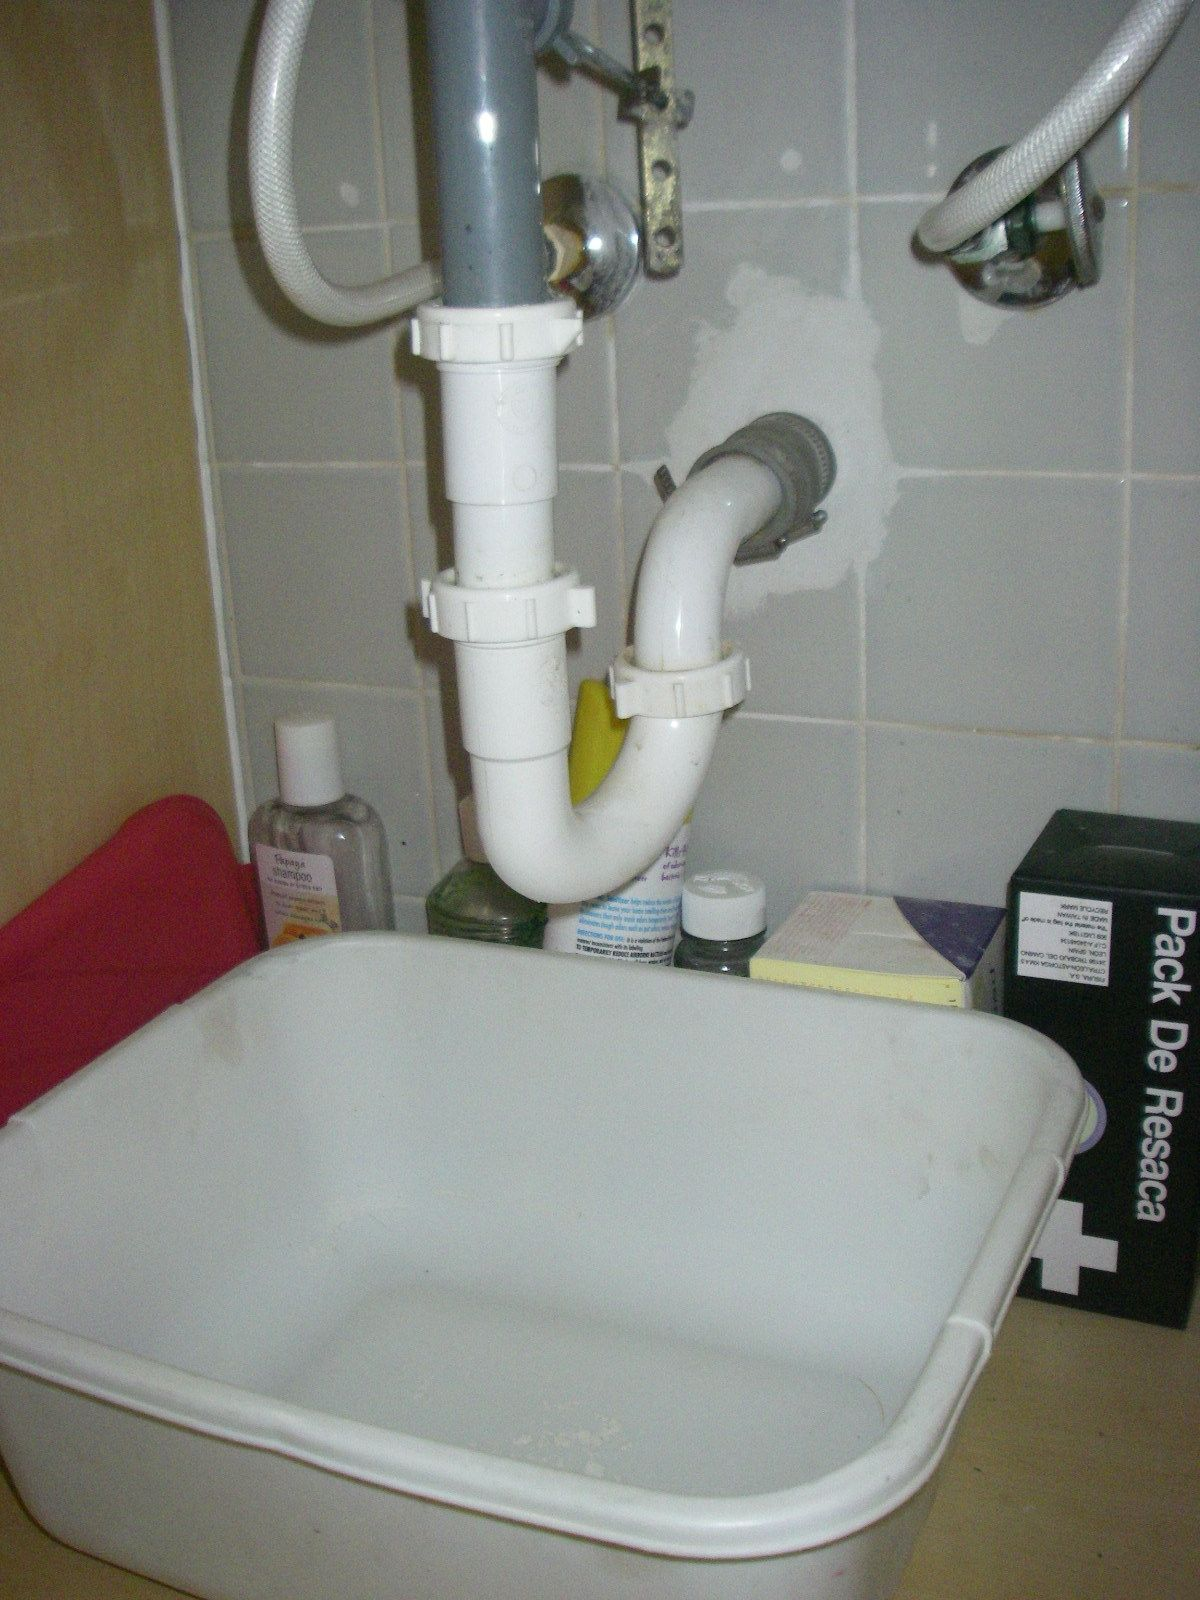 Best Way To Open Clogged Kitchen Sink | http://yonkou-tei.net ...